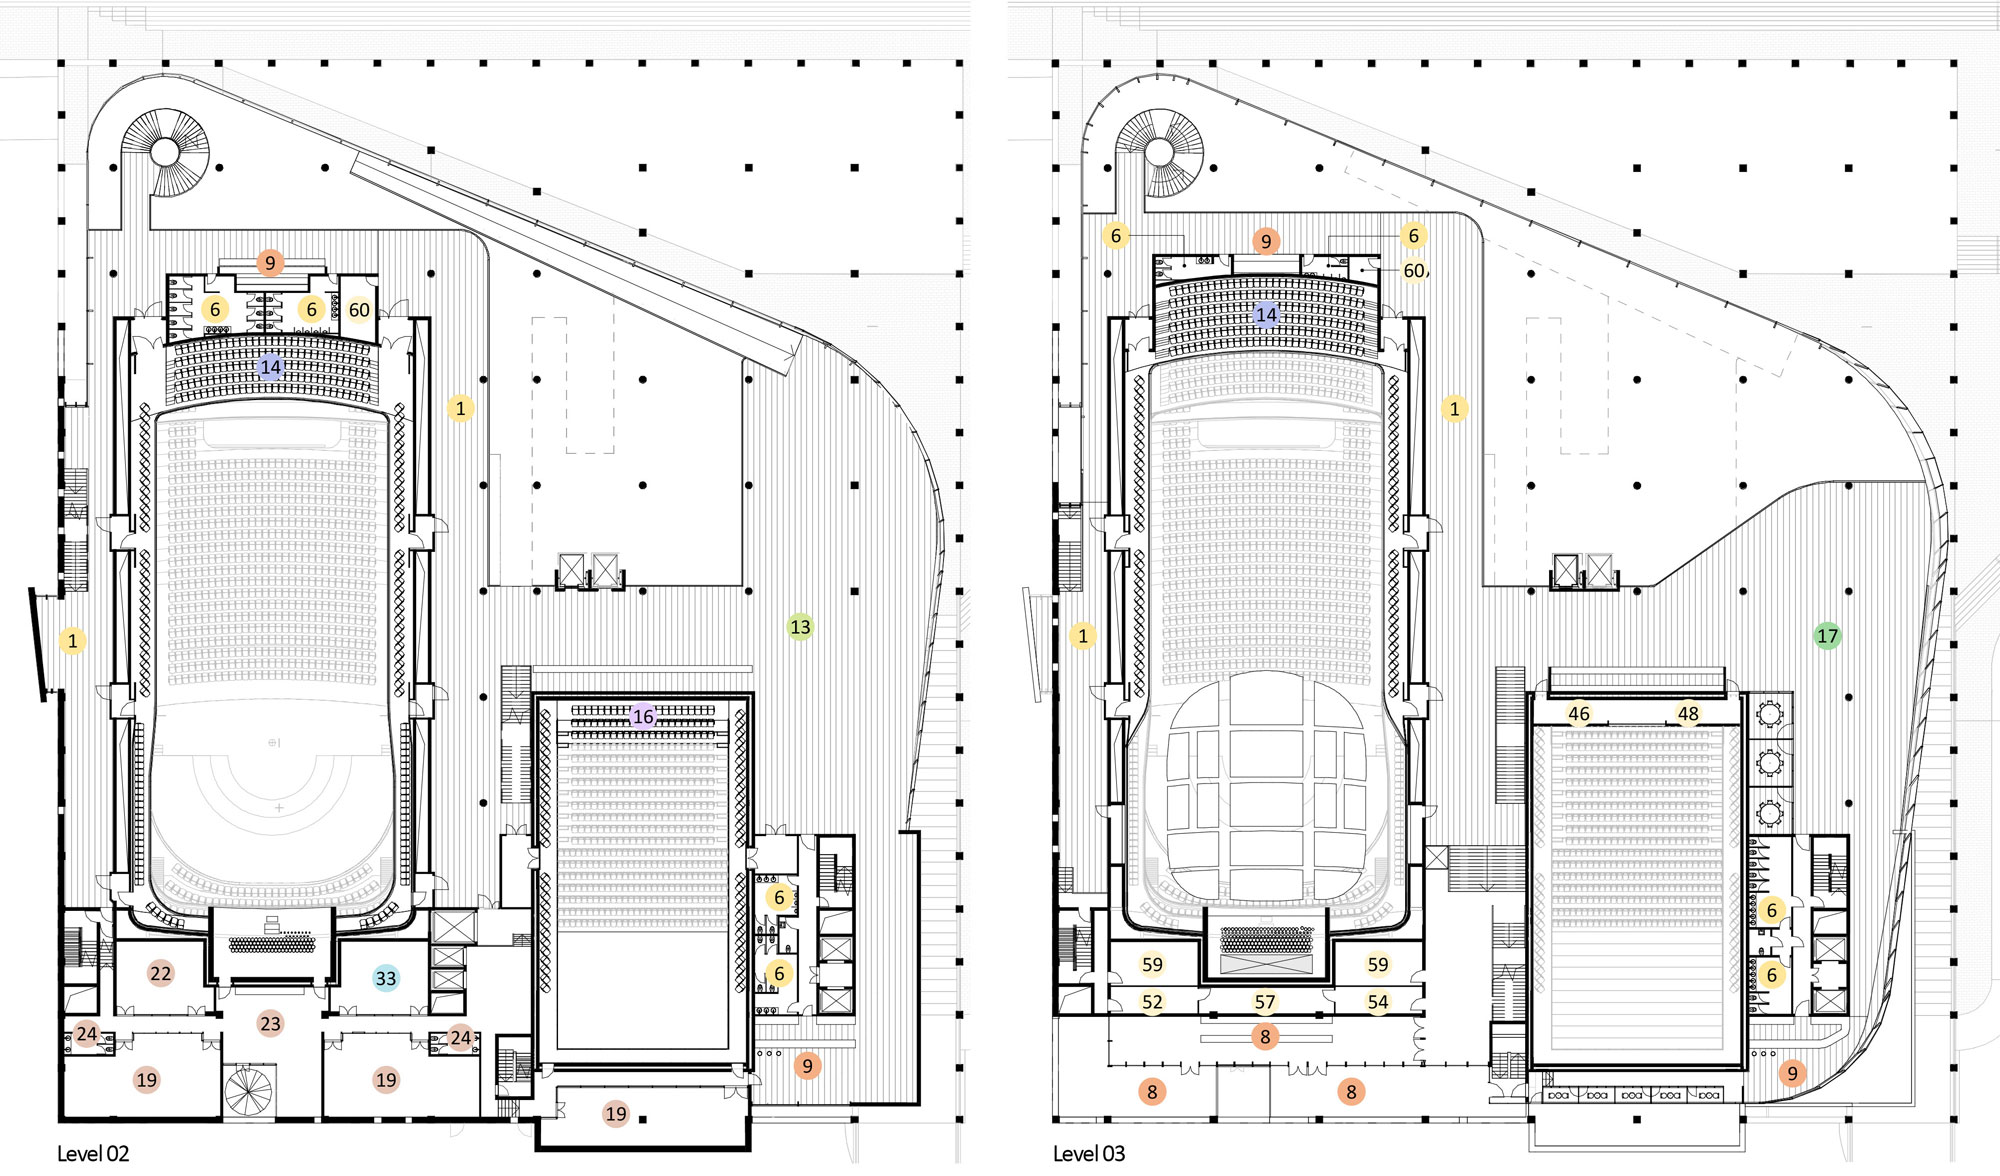 AR_Architecture_National_concert_hall_Sketches&Plans_013